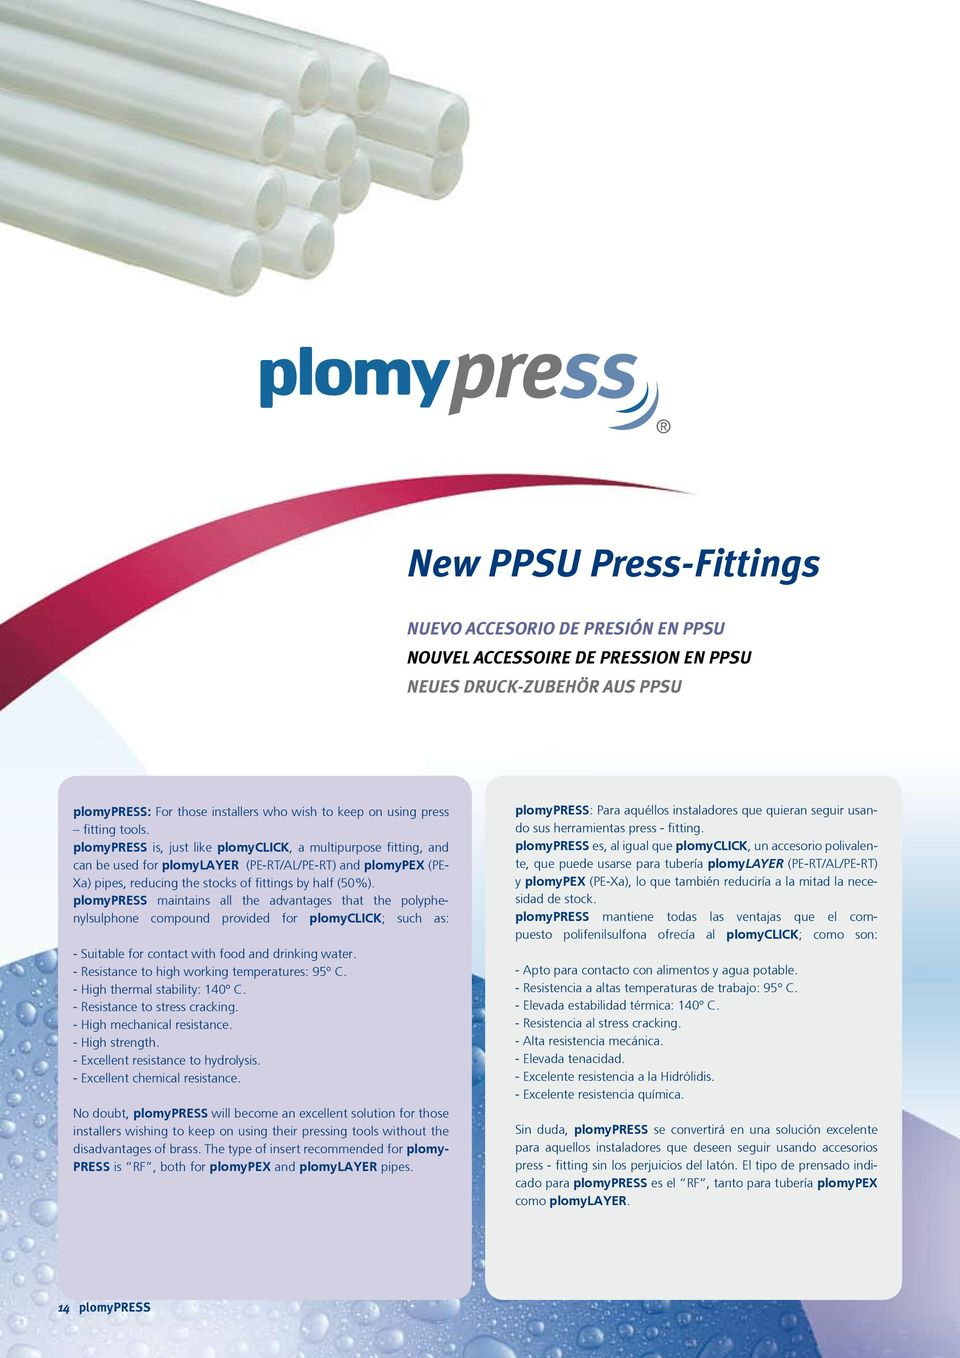 plomypress maintains all the advantages that the polyphenylsulphone compound provided for plomyclick; such as: - Suitable for contact with food and drinking water.